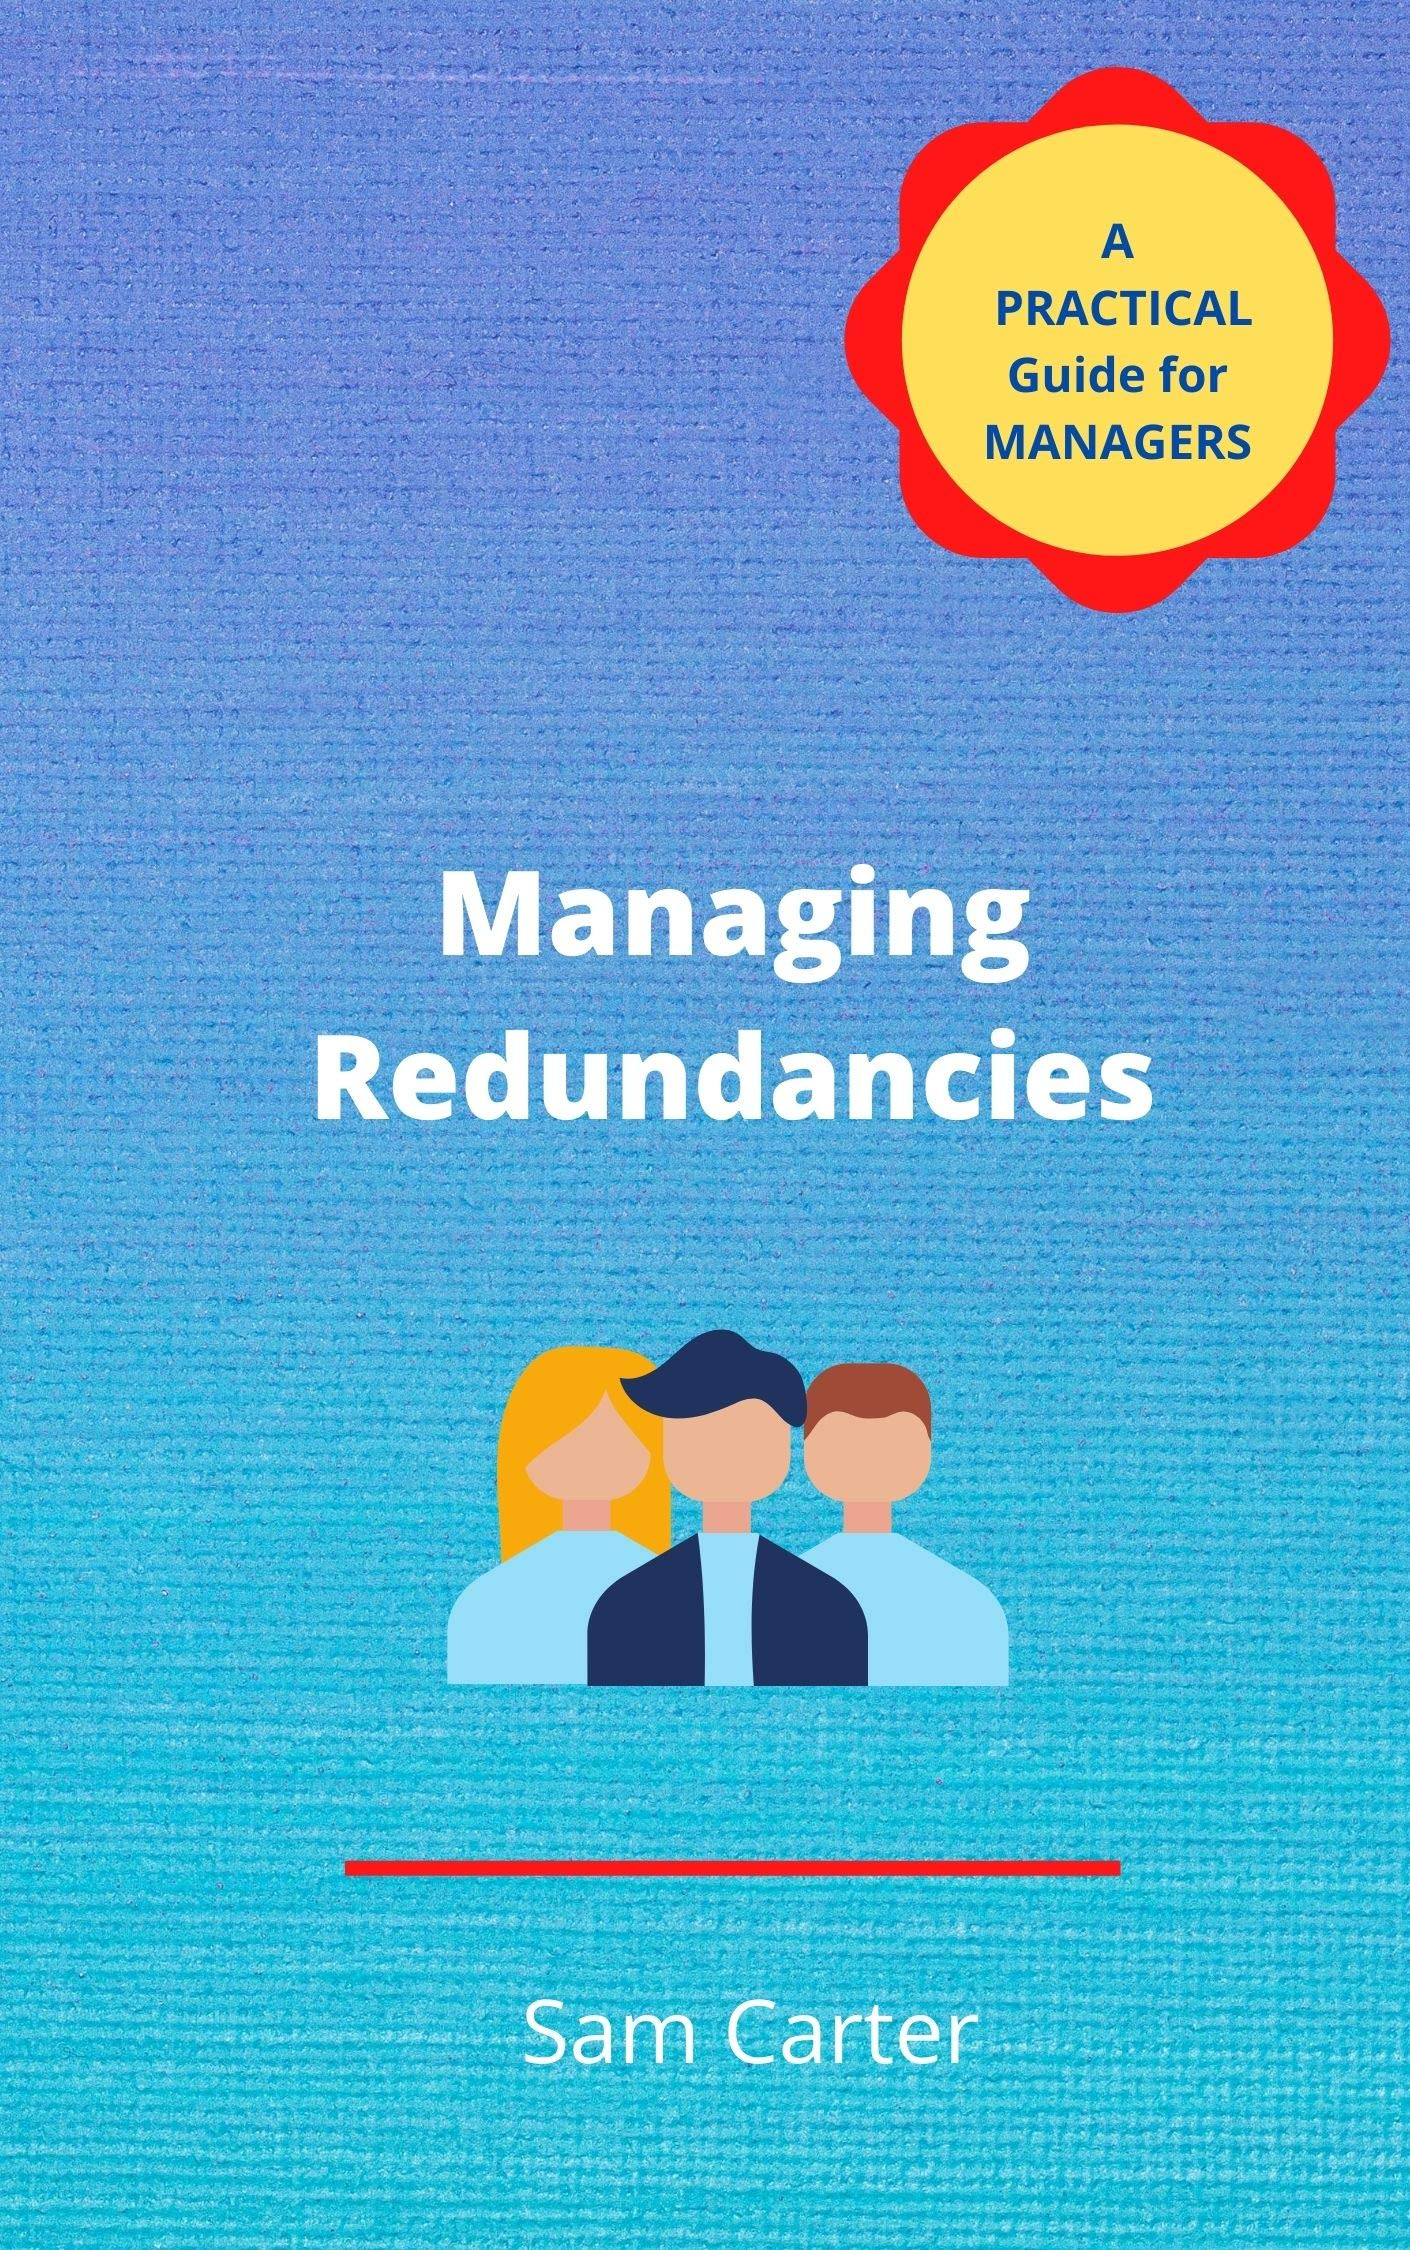 Managing Redundancies: A Practical Guide for Managers (Practical Guides Series Book 1)